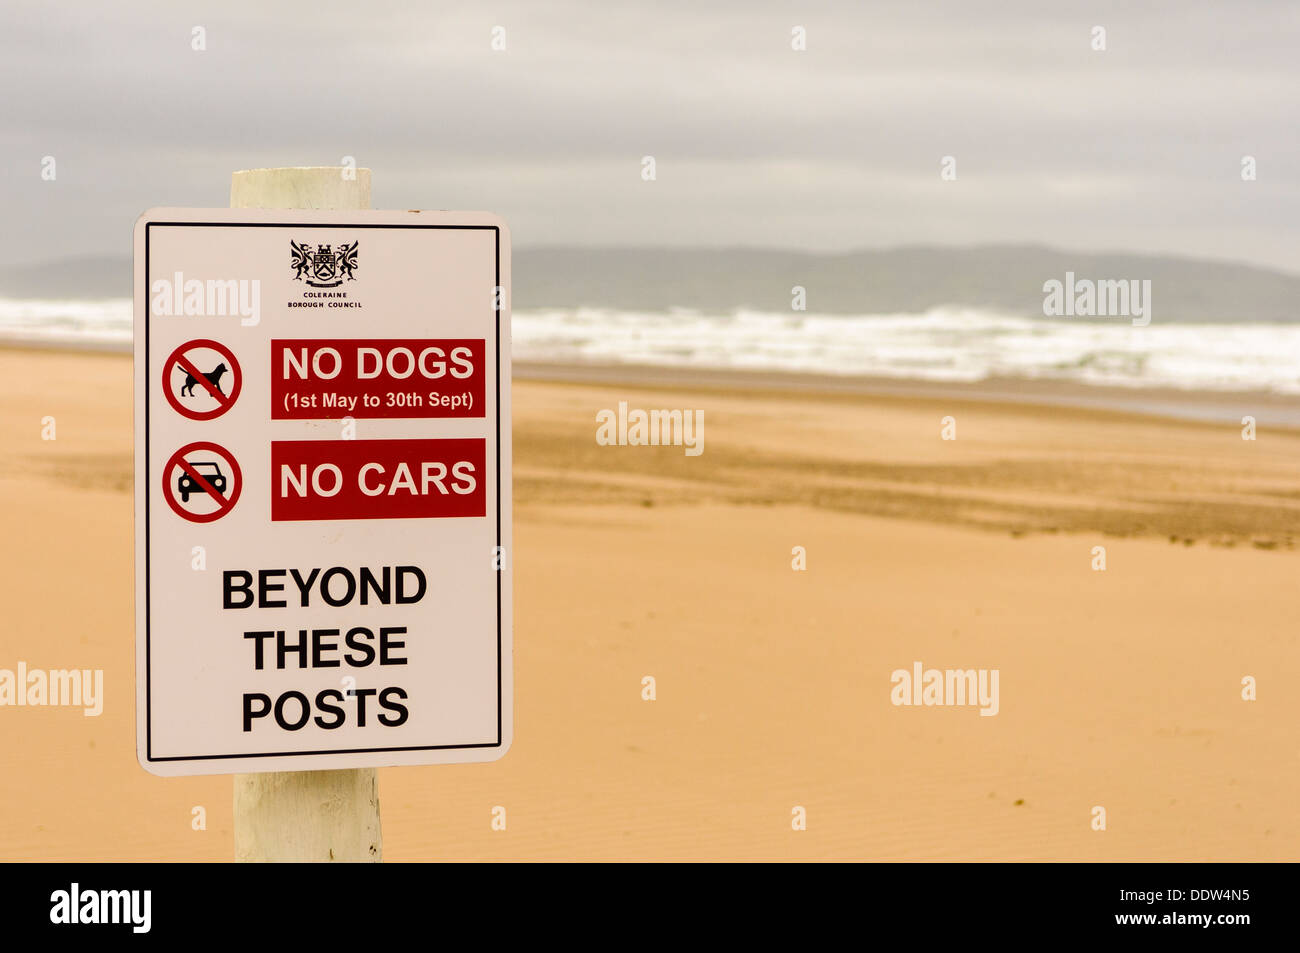 Sign on a beach warning that no dogs or cars are permitted beyond this point. - Stock Image